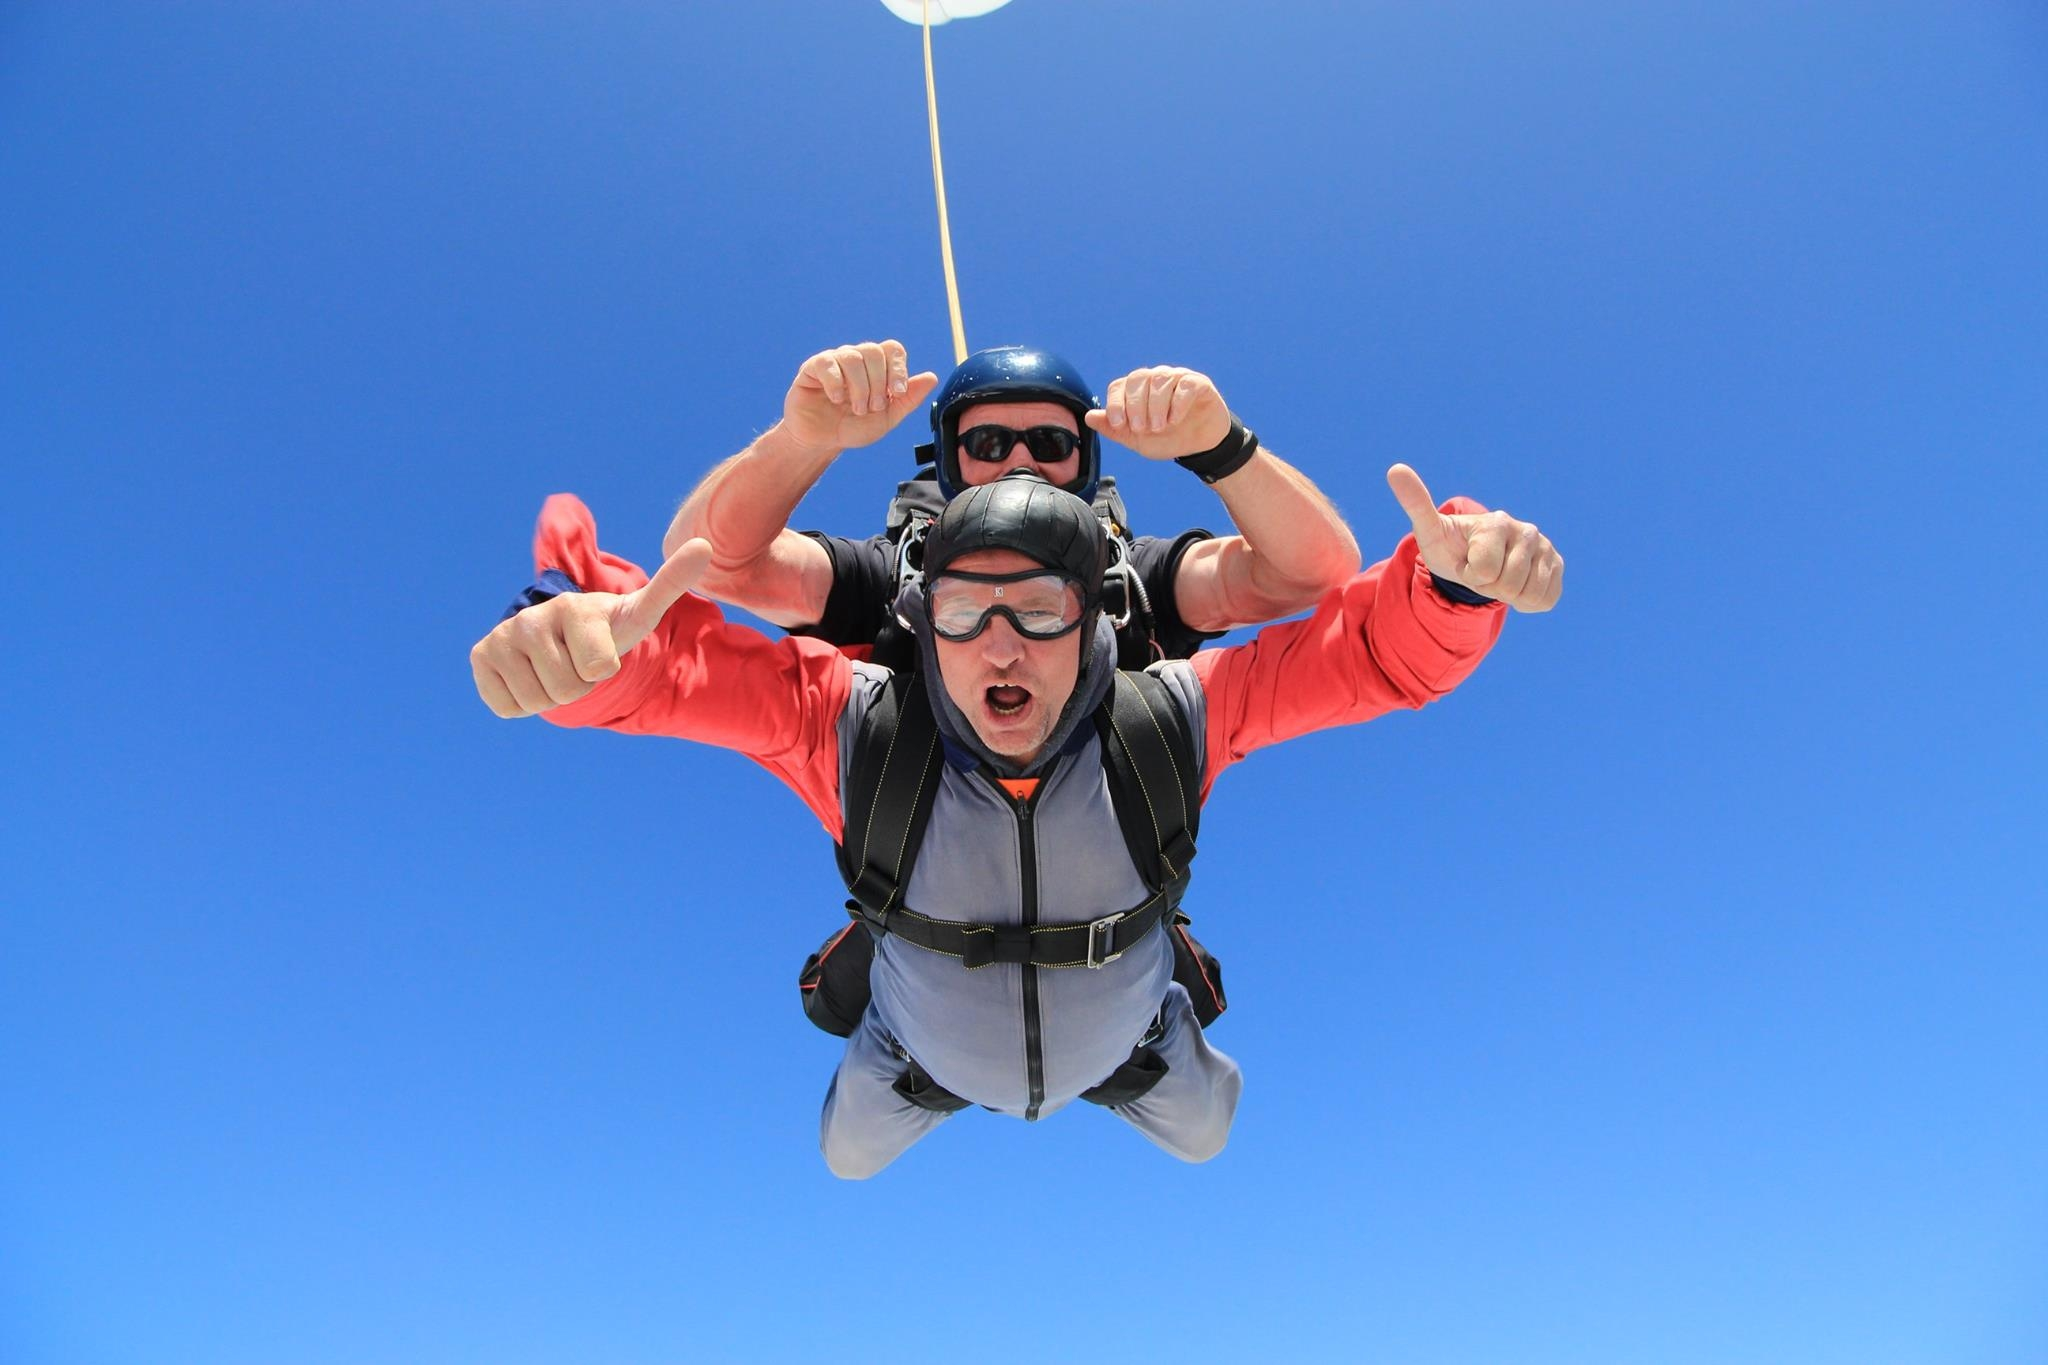 Laurence Waylett during skydive 2